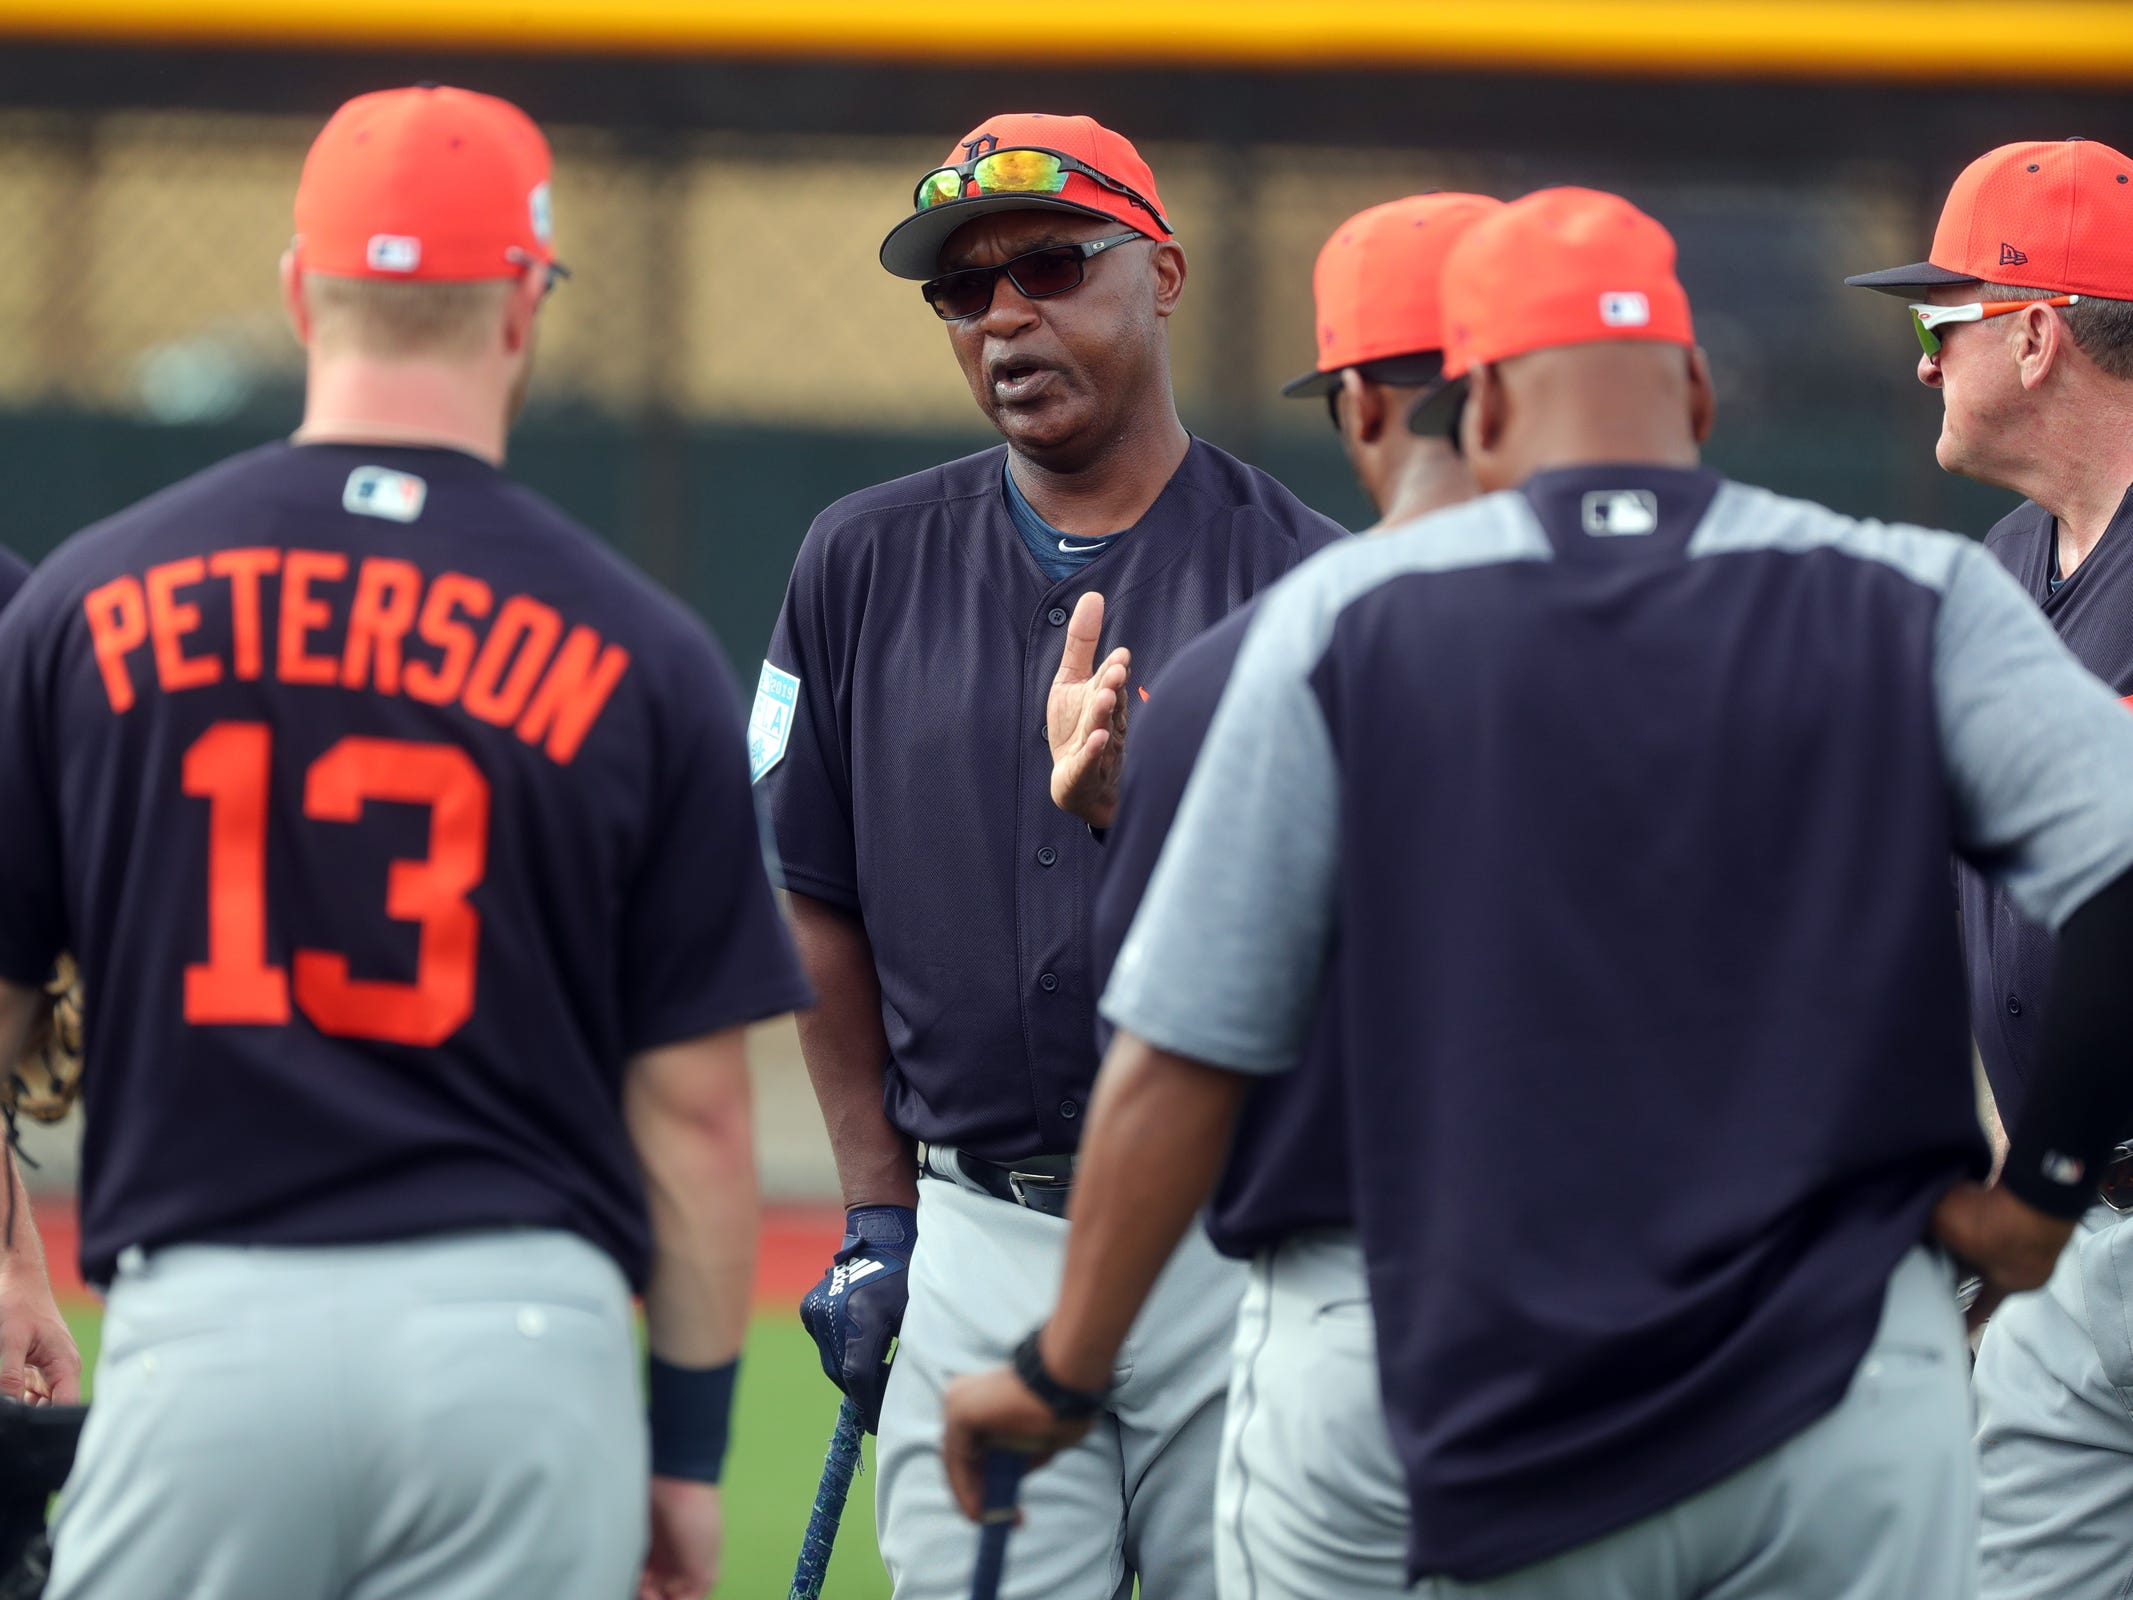 Tigers coach Dave Clark talks to outfielders during spring training Wednesday, Feb. 20, 2019, at Joker Marchant Stadium in Lakeland, Fla.